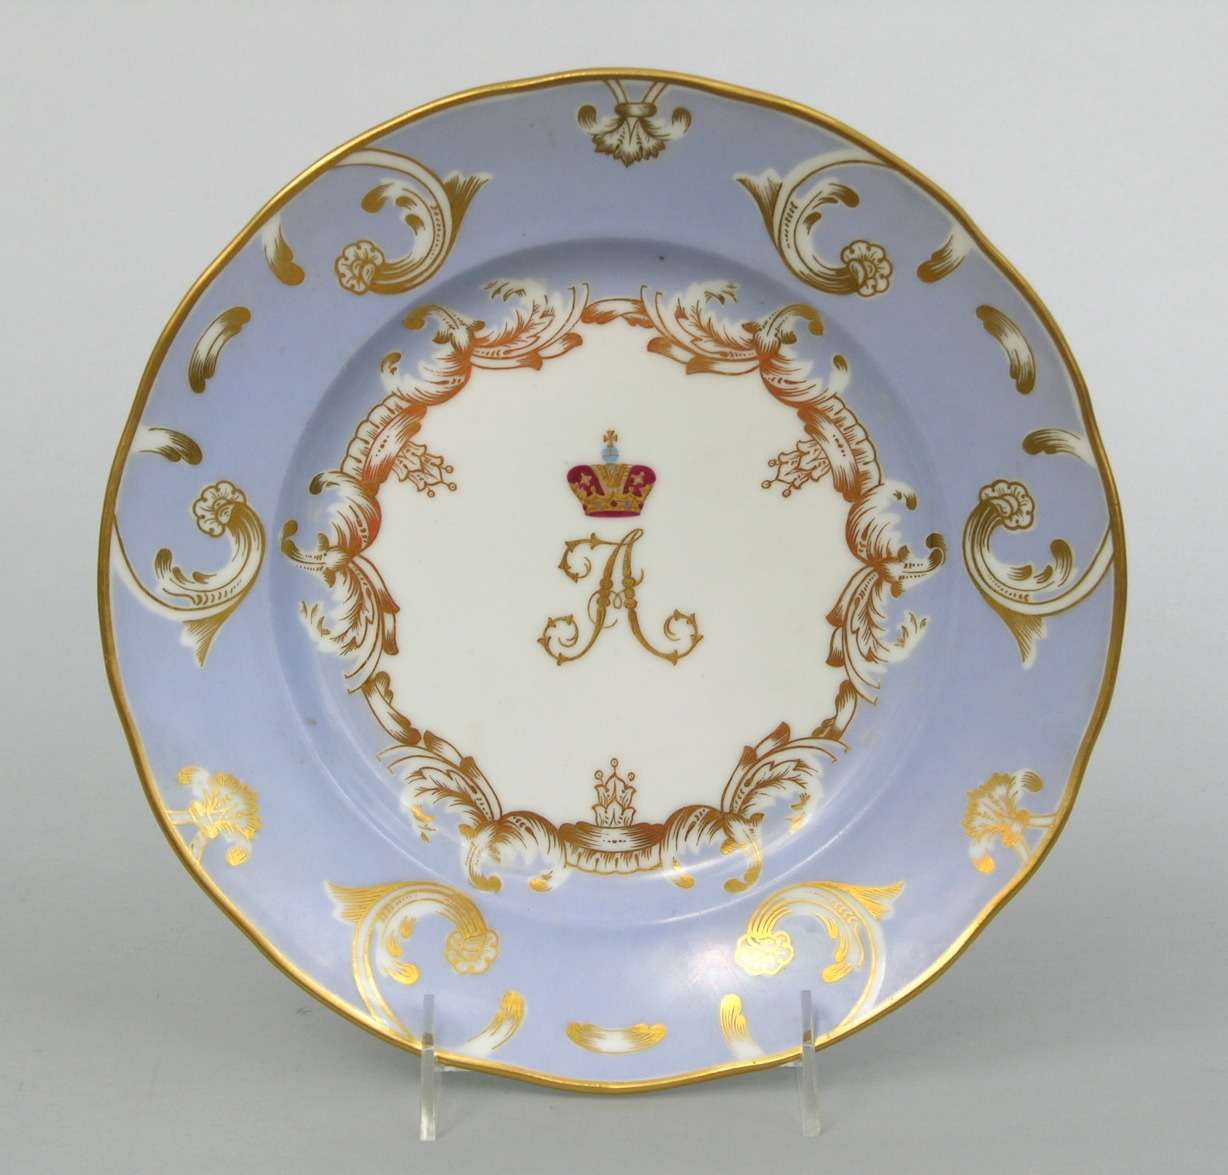 A Russian Imperial Porcelain Plate of the Grand Duke Alexander Nicholaevich Service Imperial Porcelain Manufactory ca. 1889 & Russian imperial porcelain // Aspire Auctions